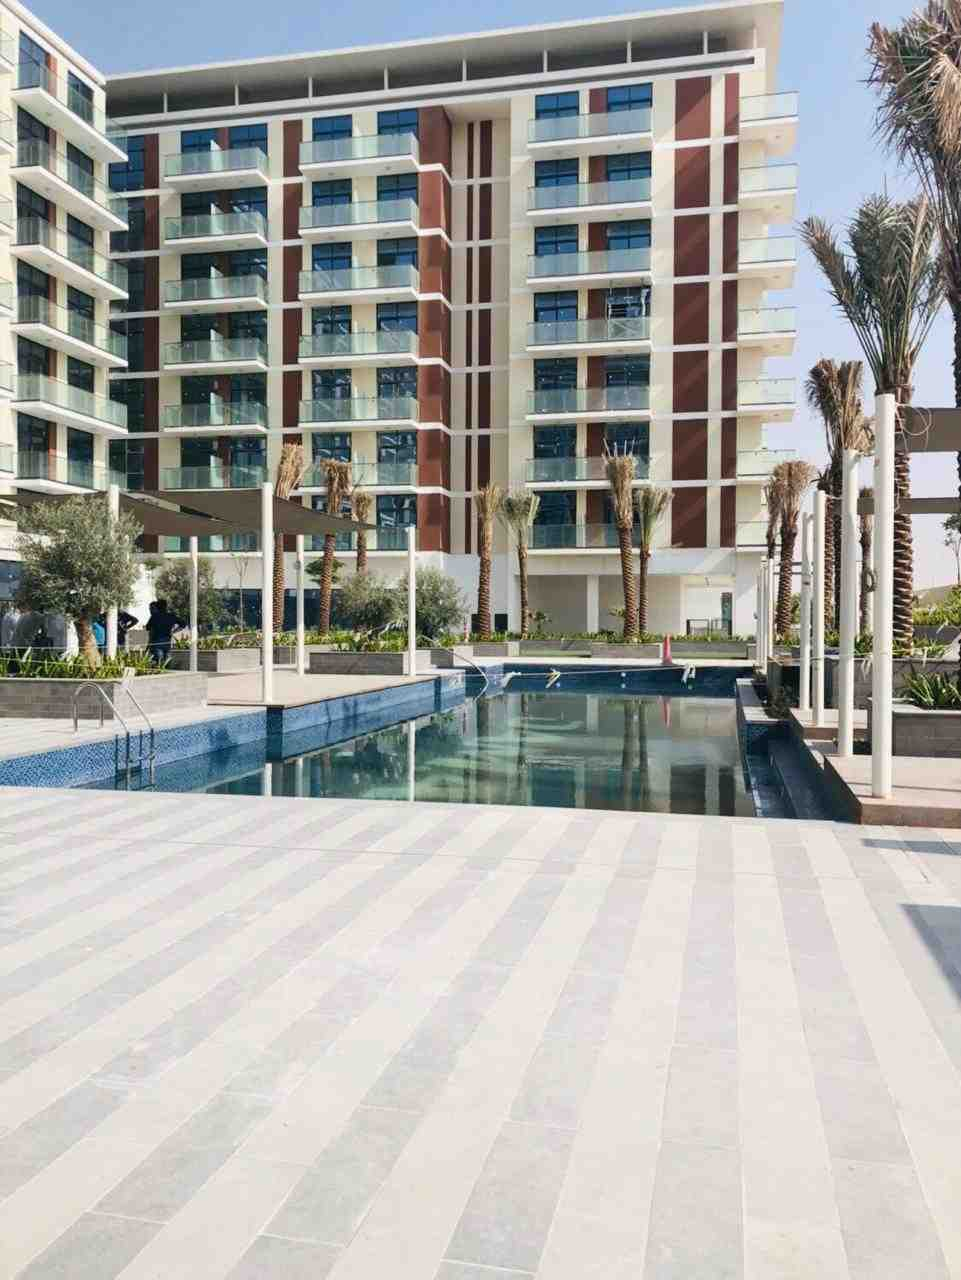 Apartments for sale in DAMAC Maison de Ville Tenora